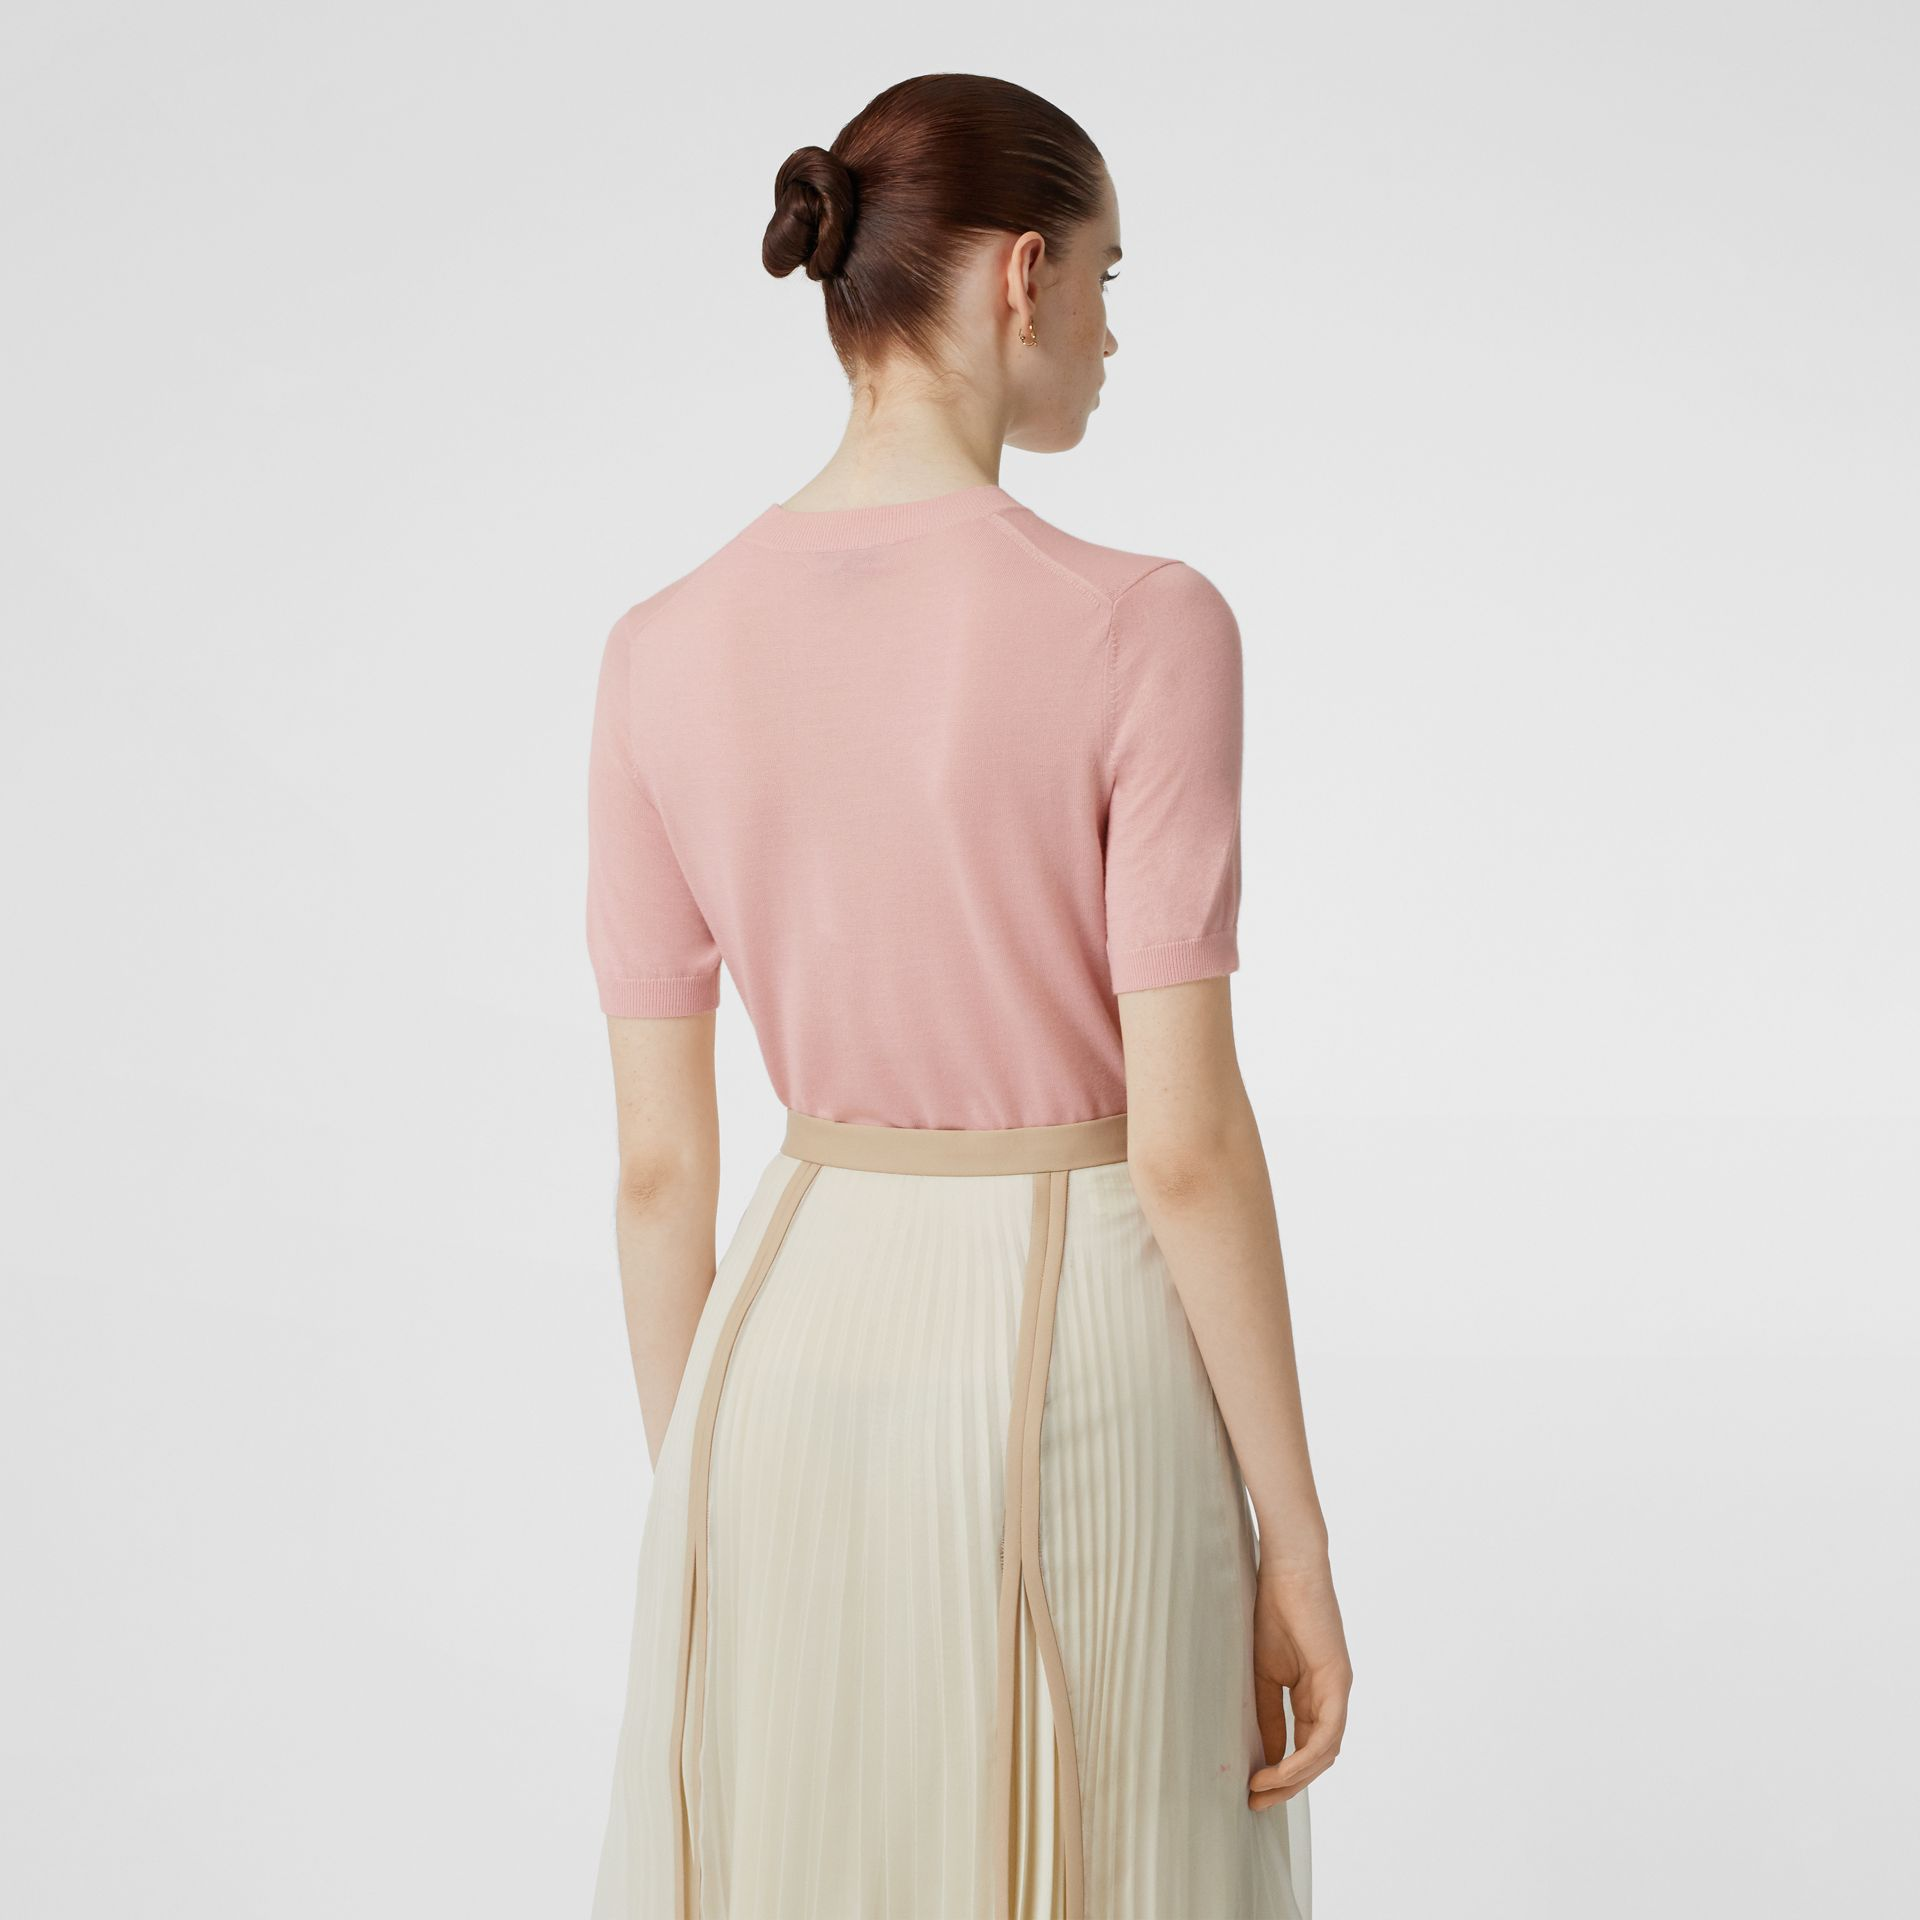 Monogram Motif Cashmere Top in Pink - Women | Burberry - gallery image 2